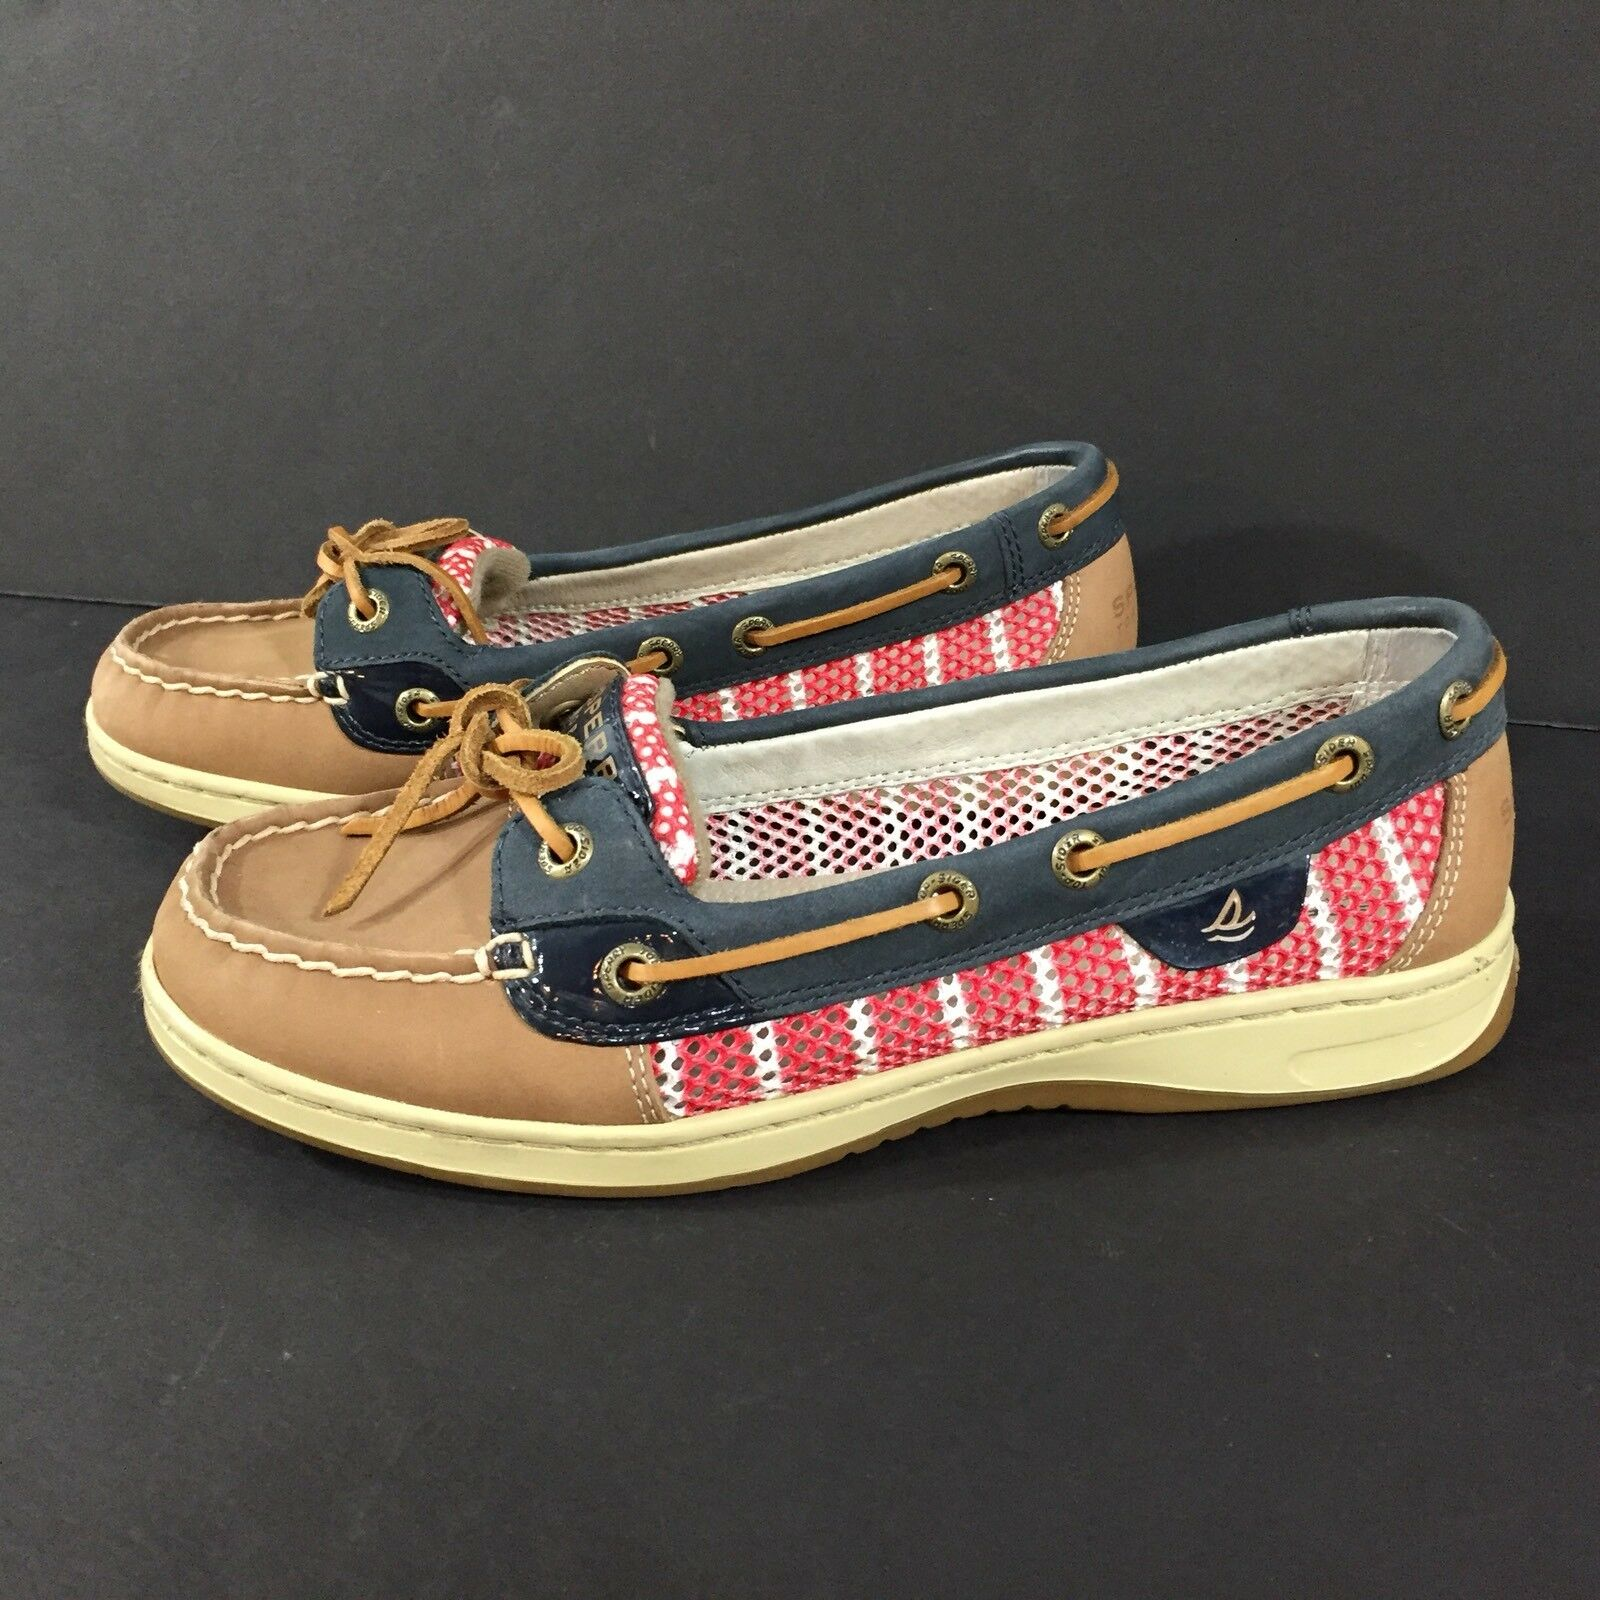 Sperry Top-Sider Angelfish Breton Stripe Mesh Boat shoes STS91253 Navy Tan Red